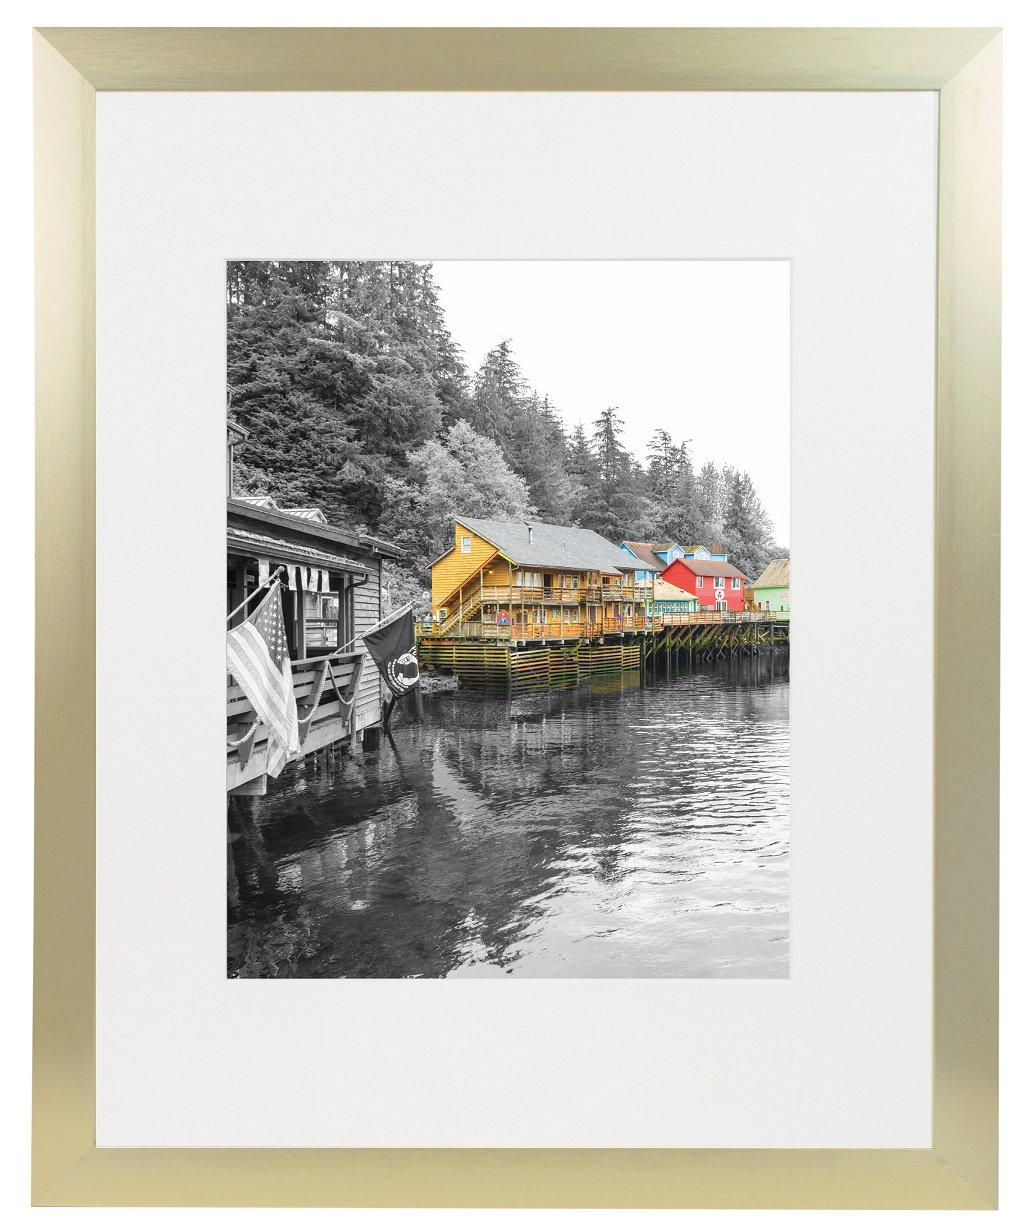 Golden State Art, Gold Color Satin Aluminum Landscape Or Portrait Picture Frame with Ivory Color Mat & Real Glass (16x20) by Golden State Art